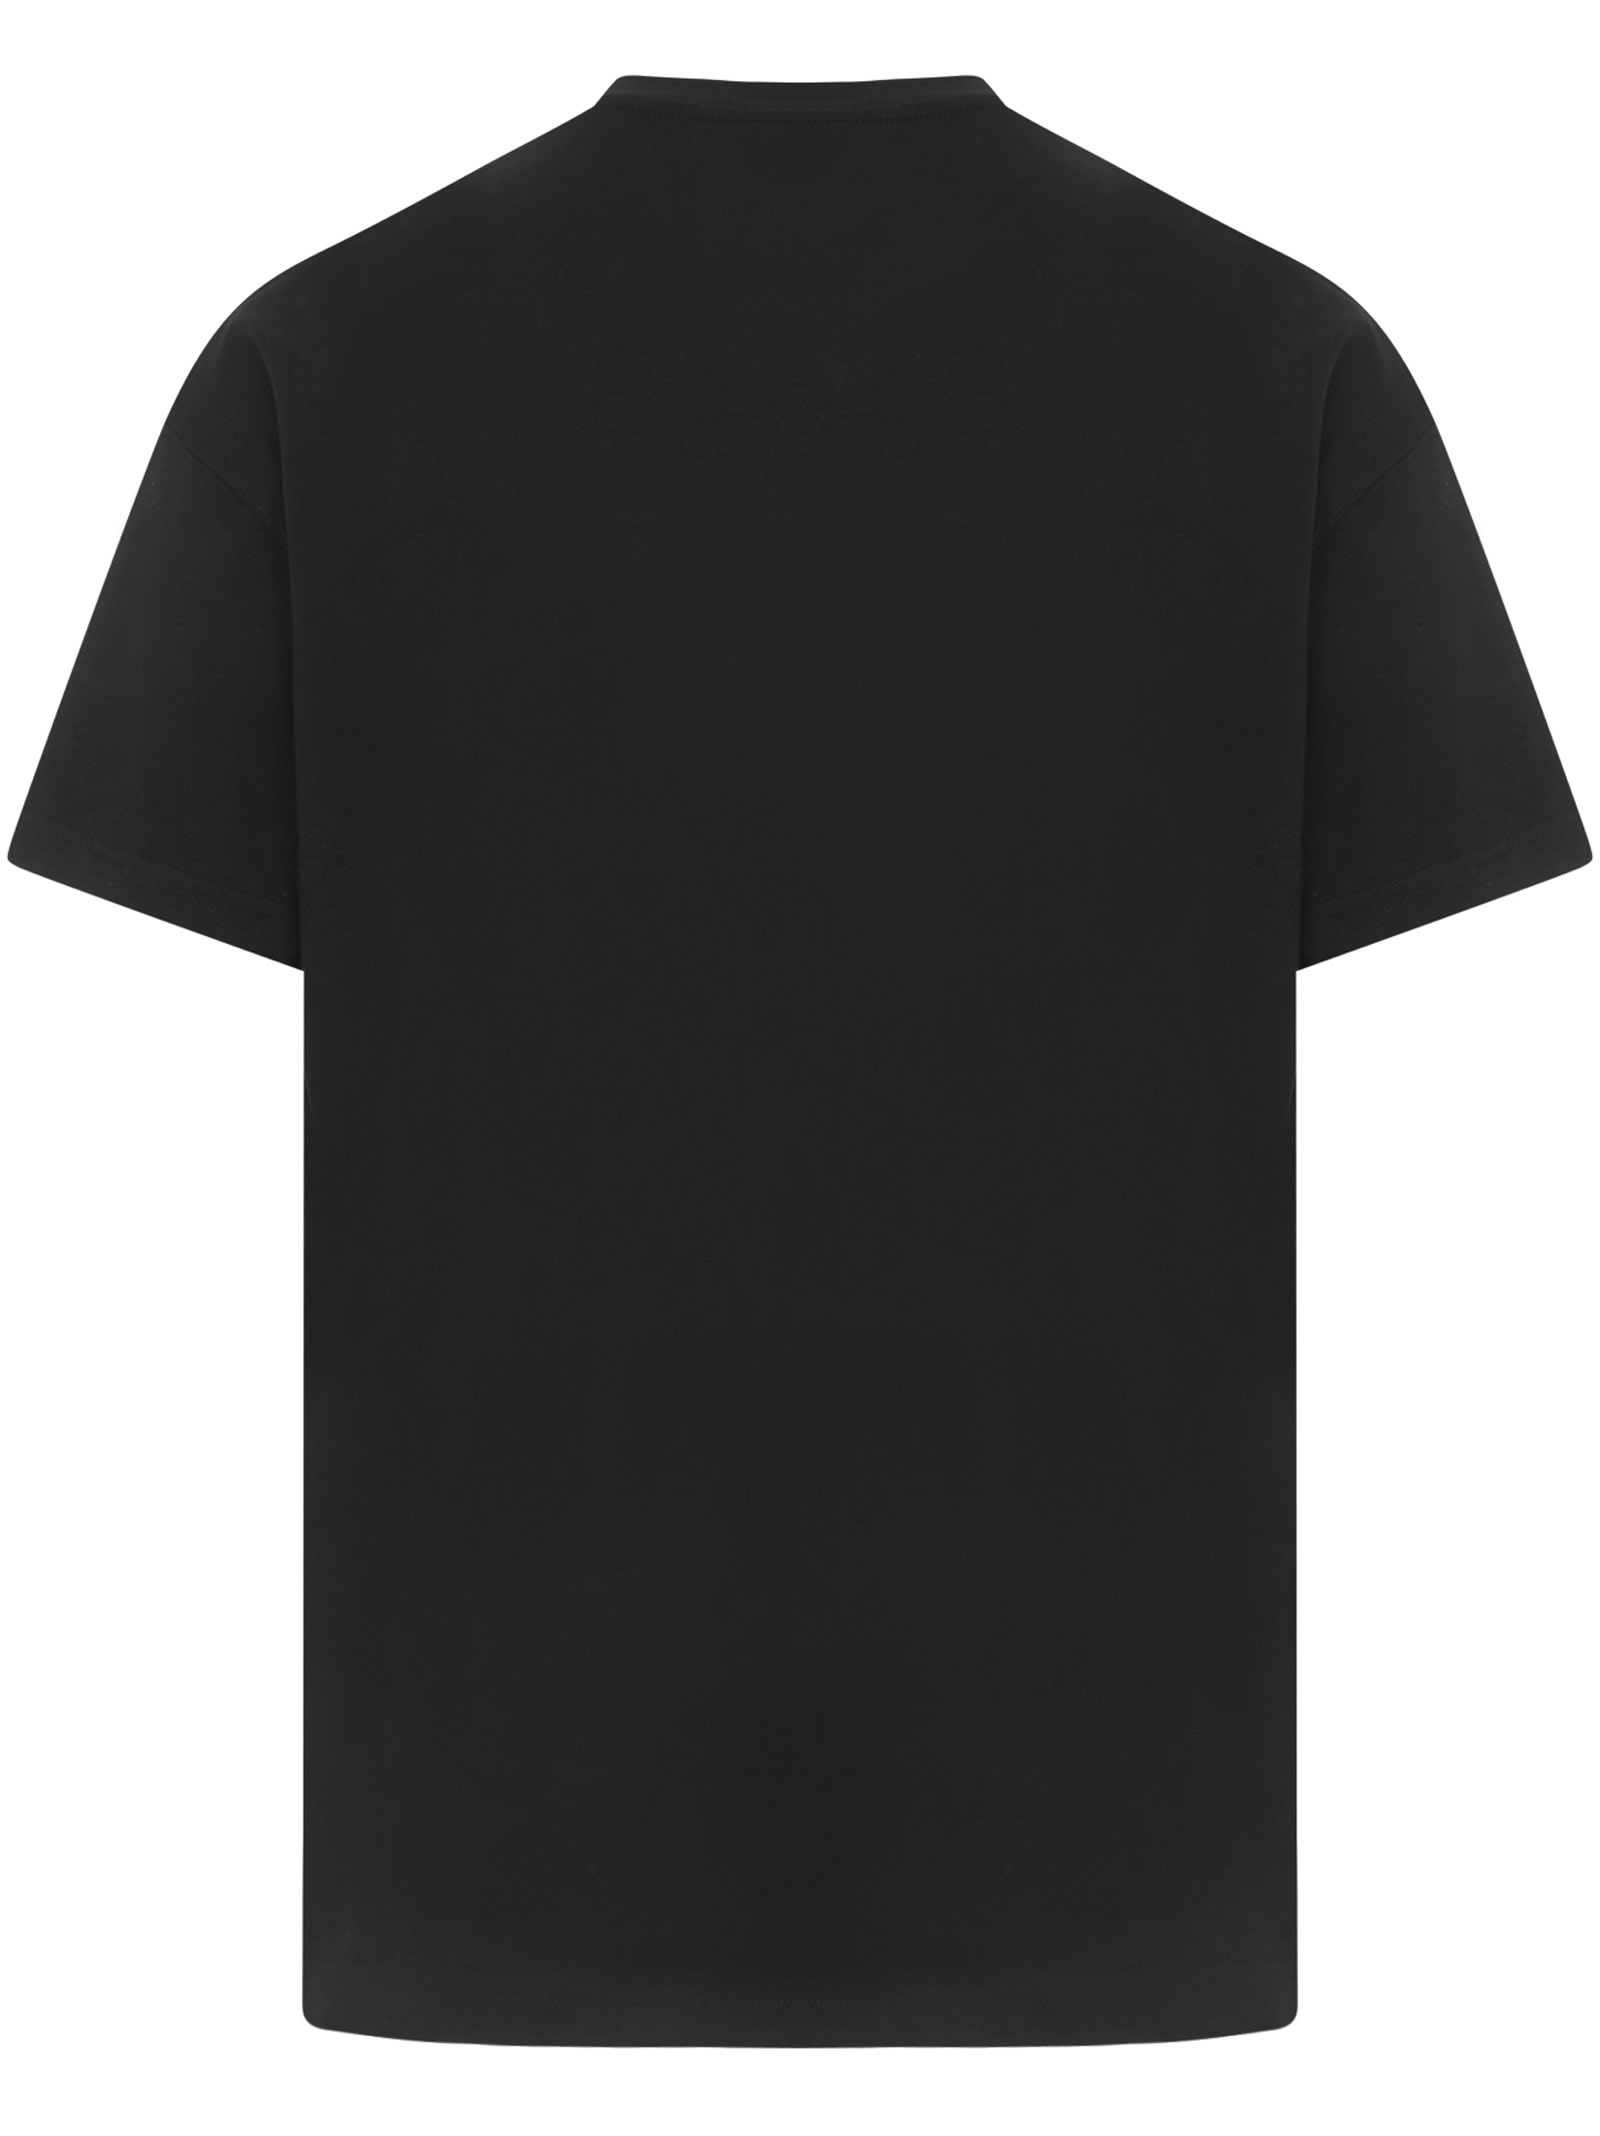 Recommend Cheap A Cold Wall T-shirt - Top Quality